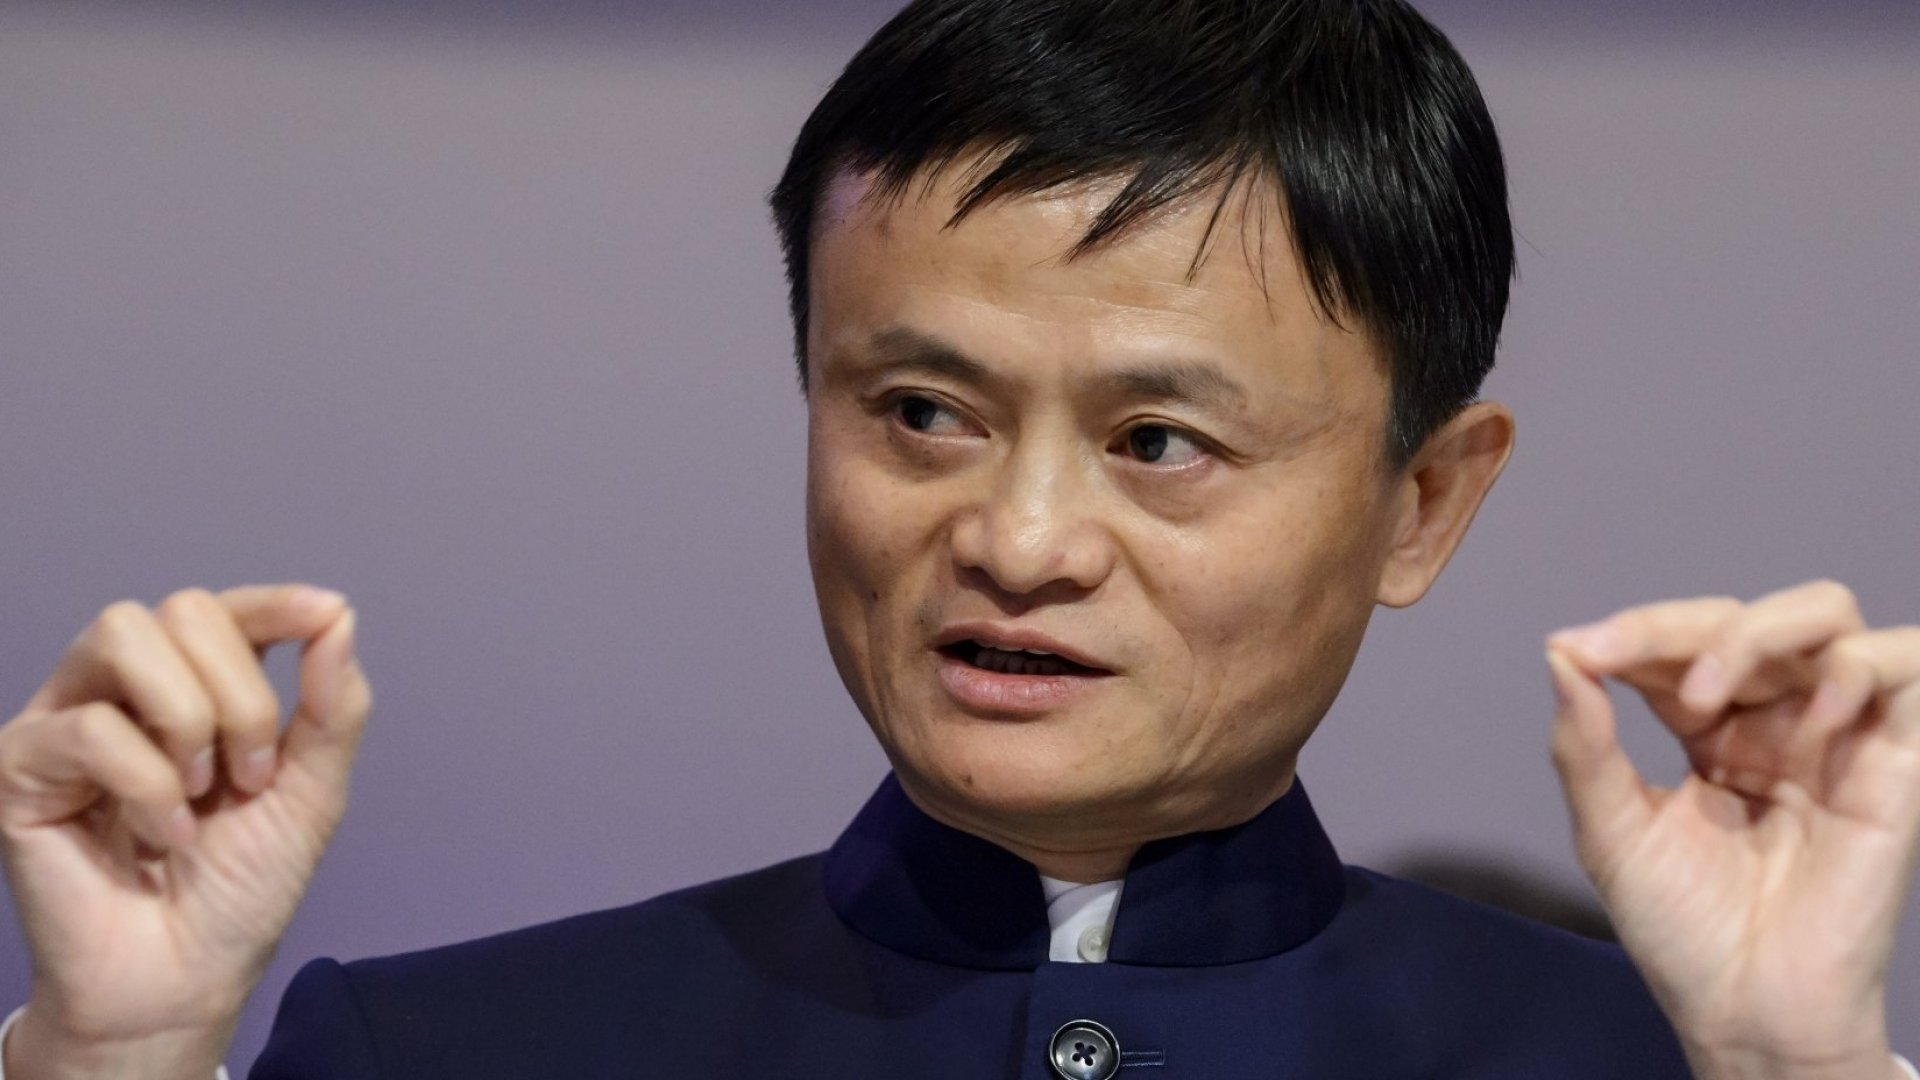 Speaking at Davos, Alibaba Founder Jack Ma Just Gave Today's Young People 1 Priceless Piece of Advice